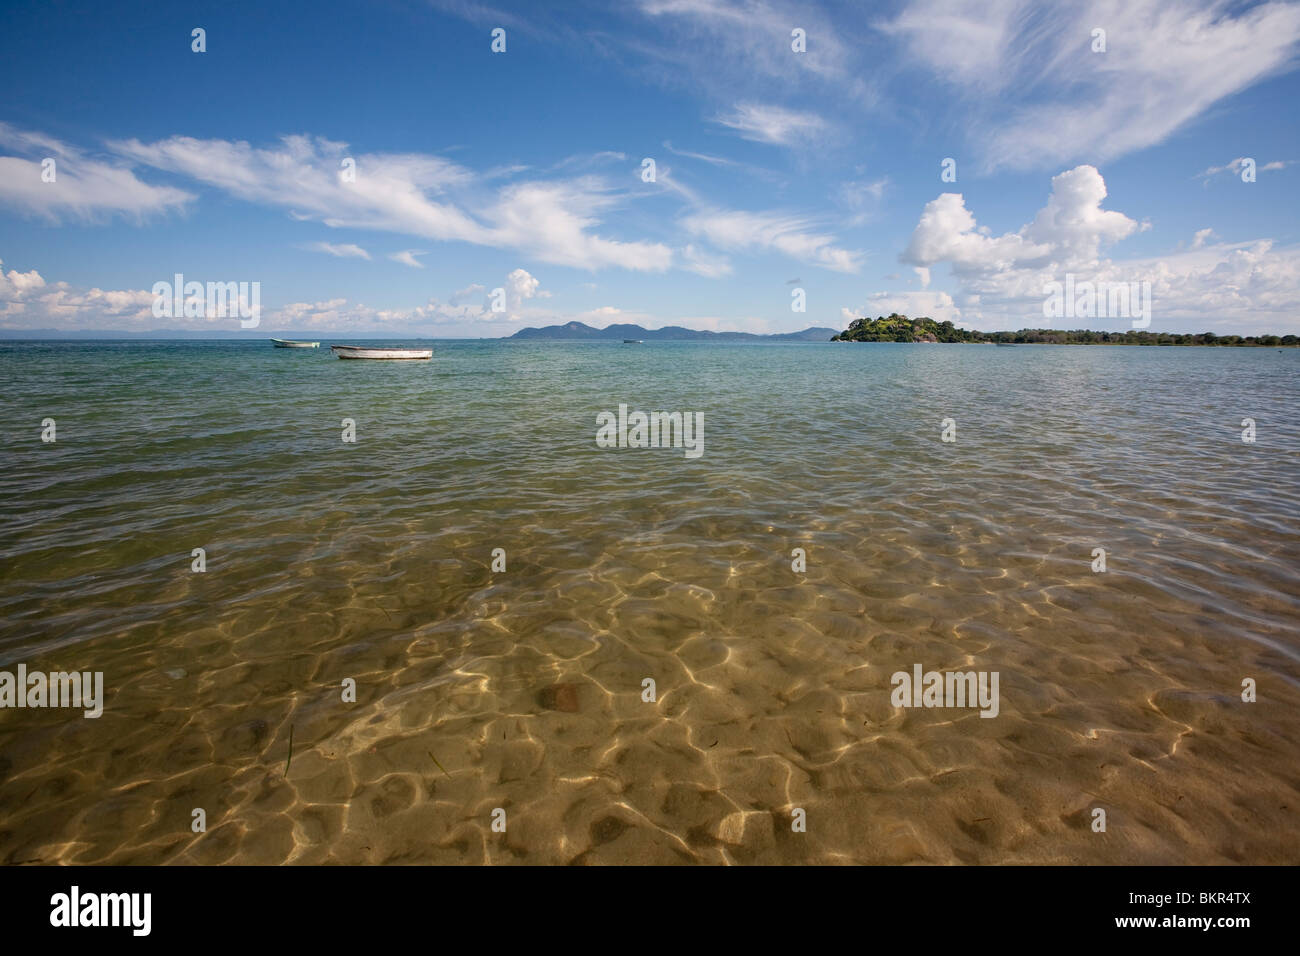 Malawi, Monkey Bay. Crystal clear waters of Lake Malawi. - Stock Image